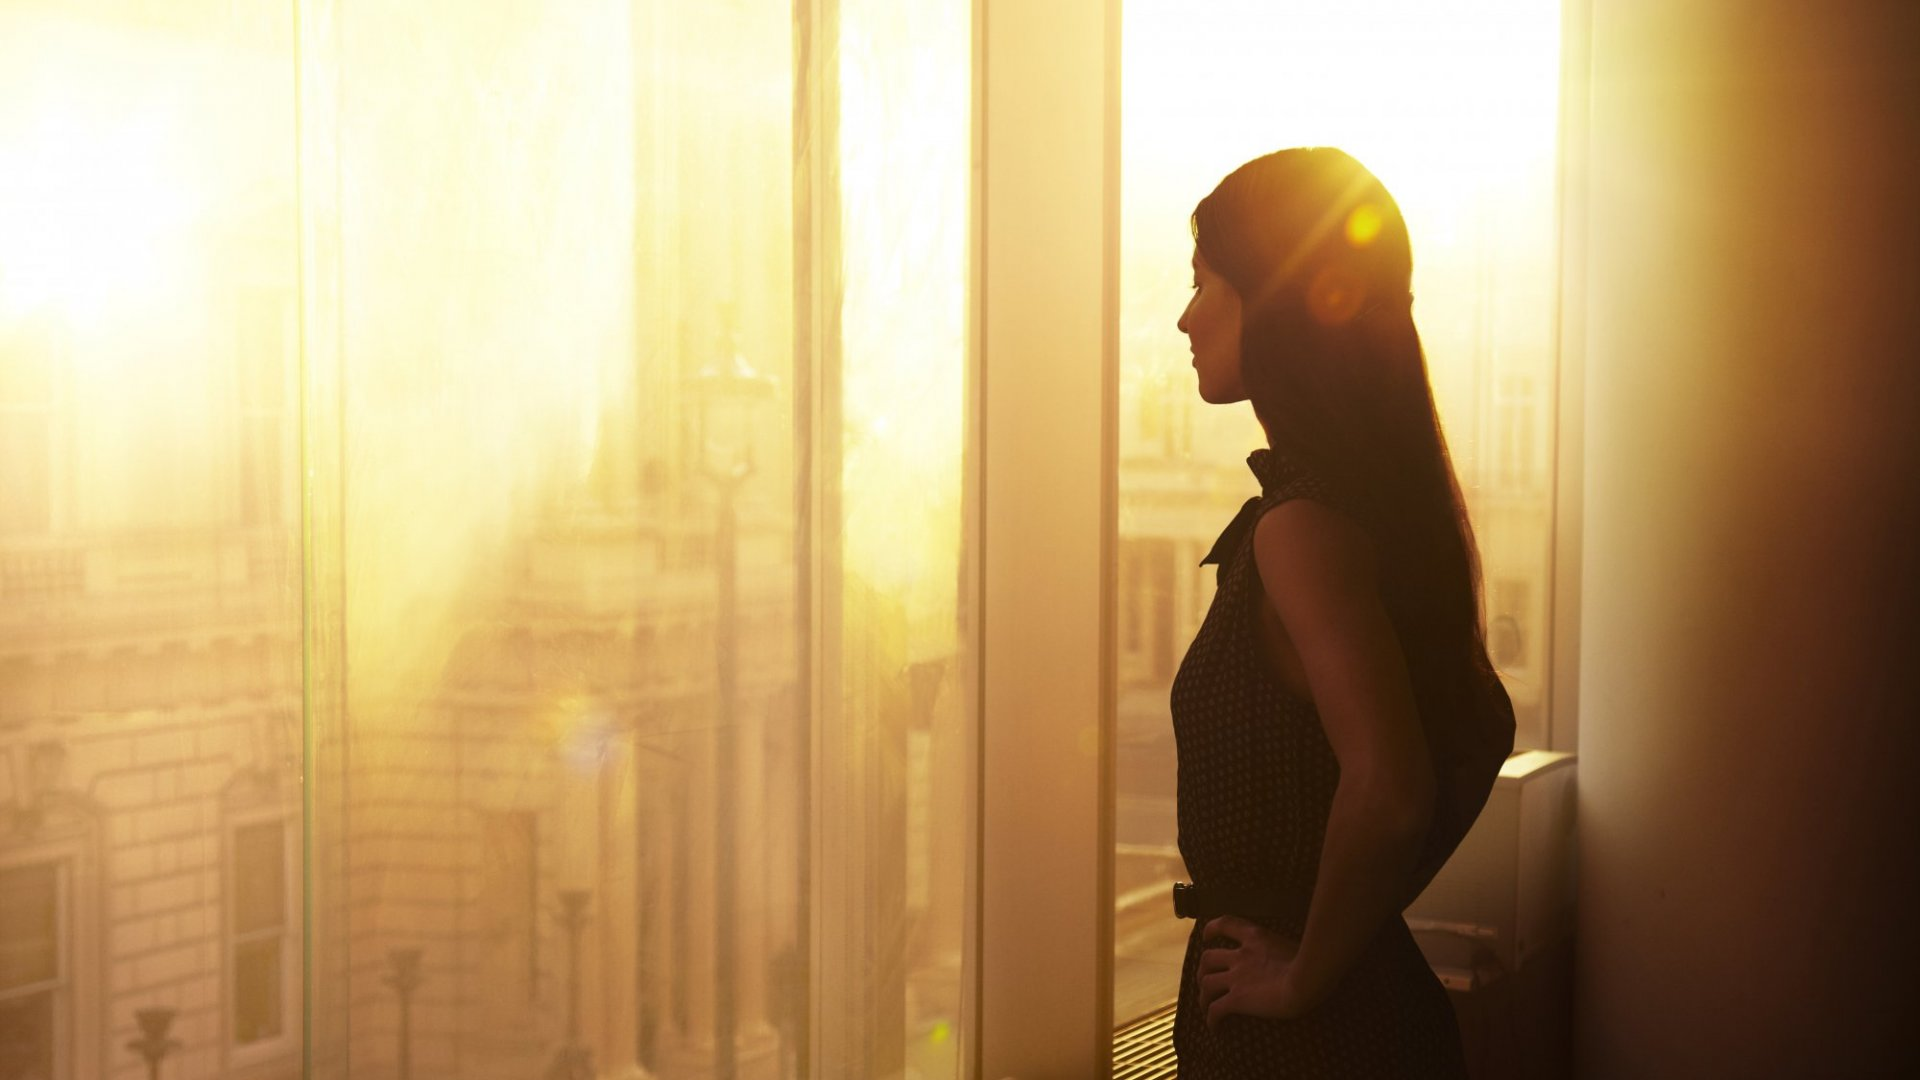 New VC Research Says Female Founders Outperform Peers 63 Percent